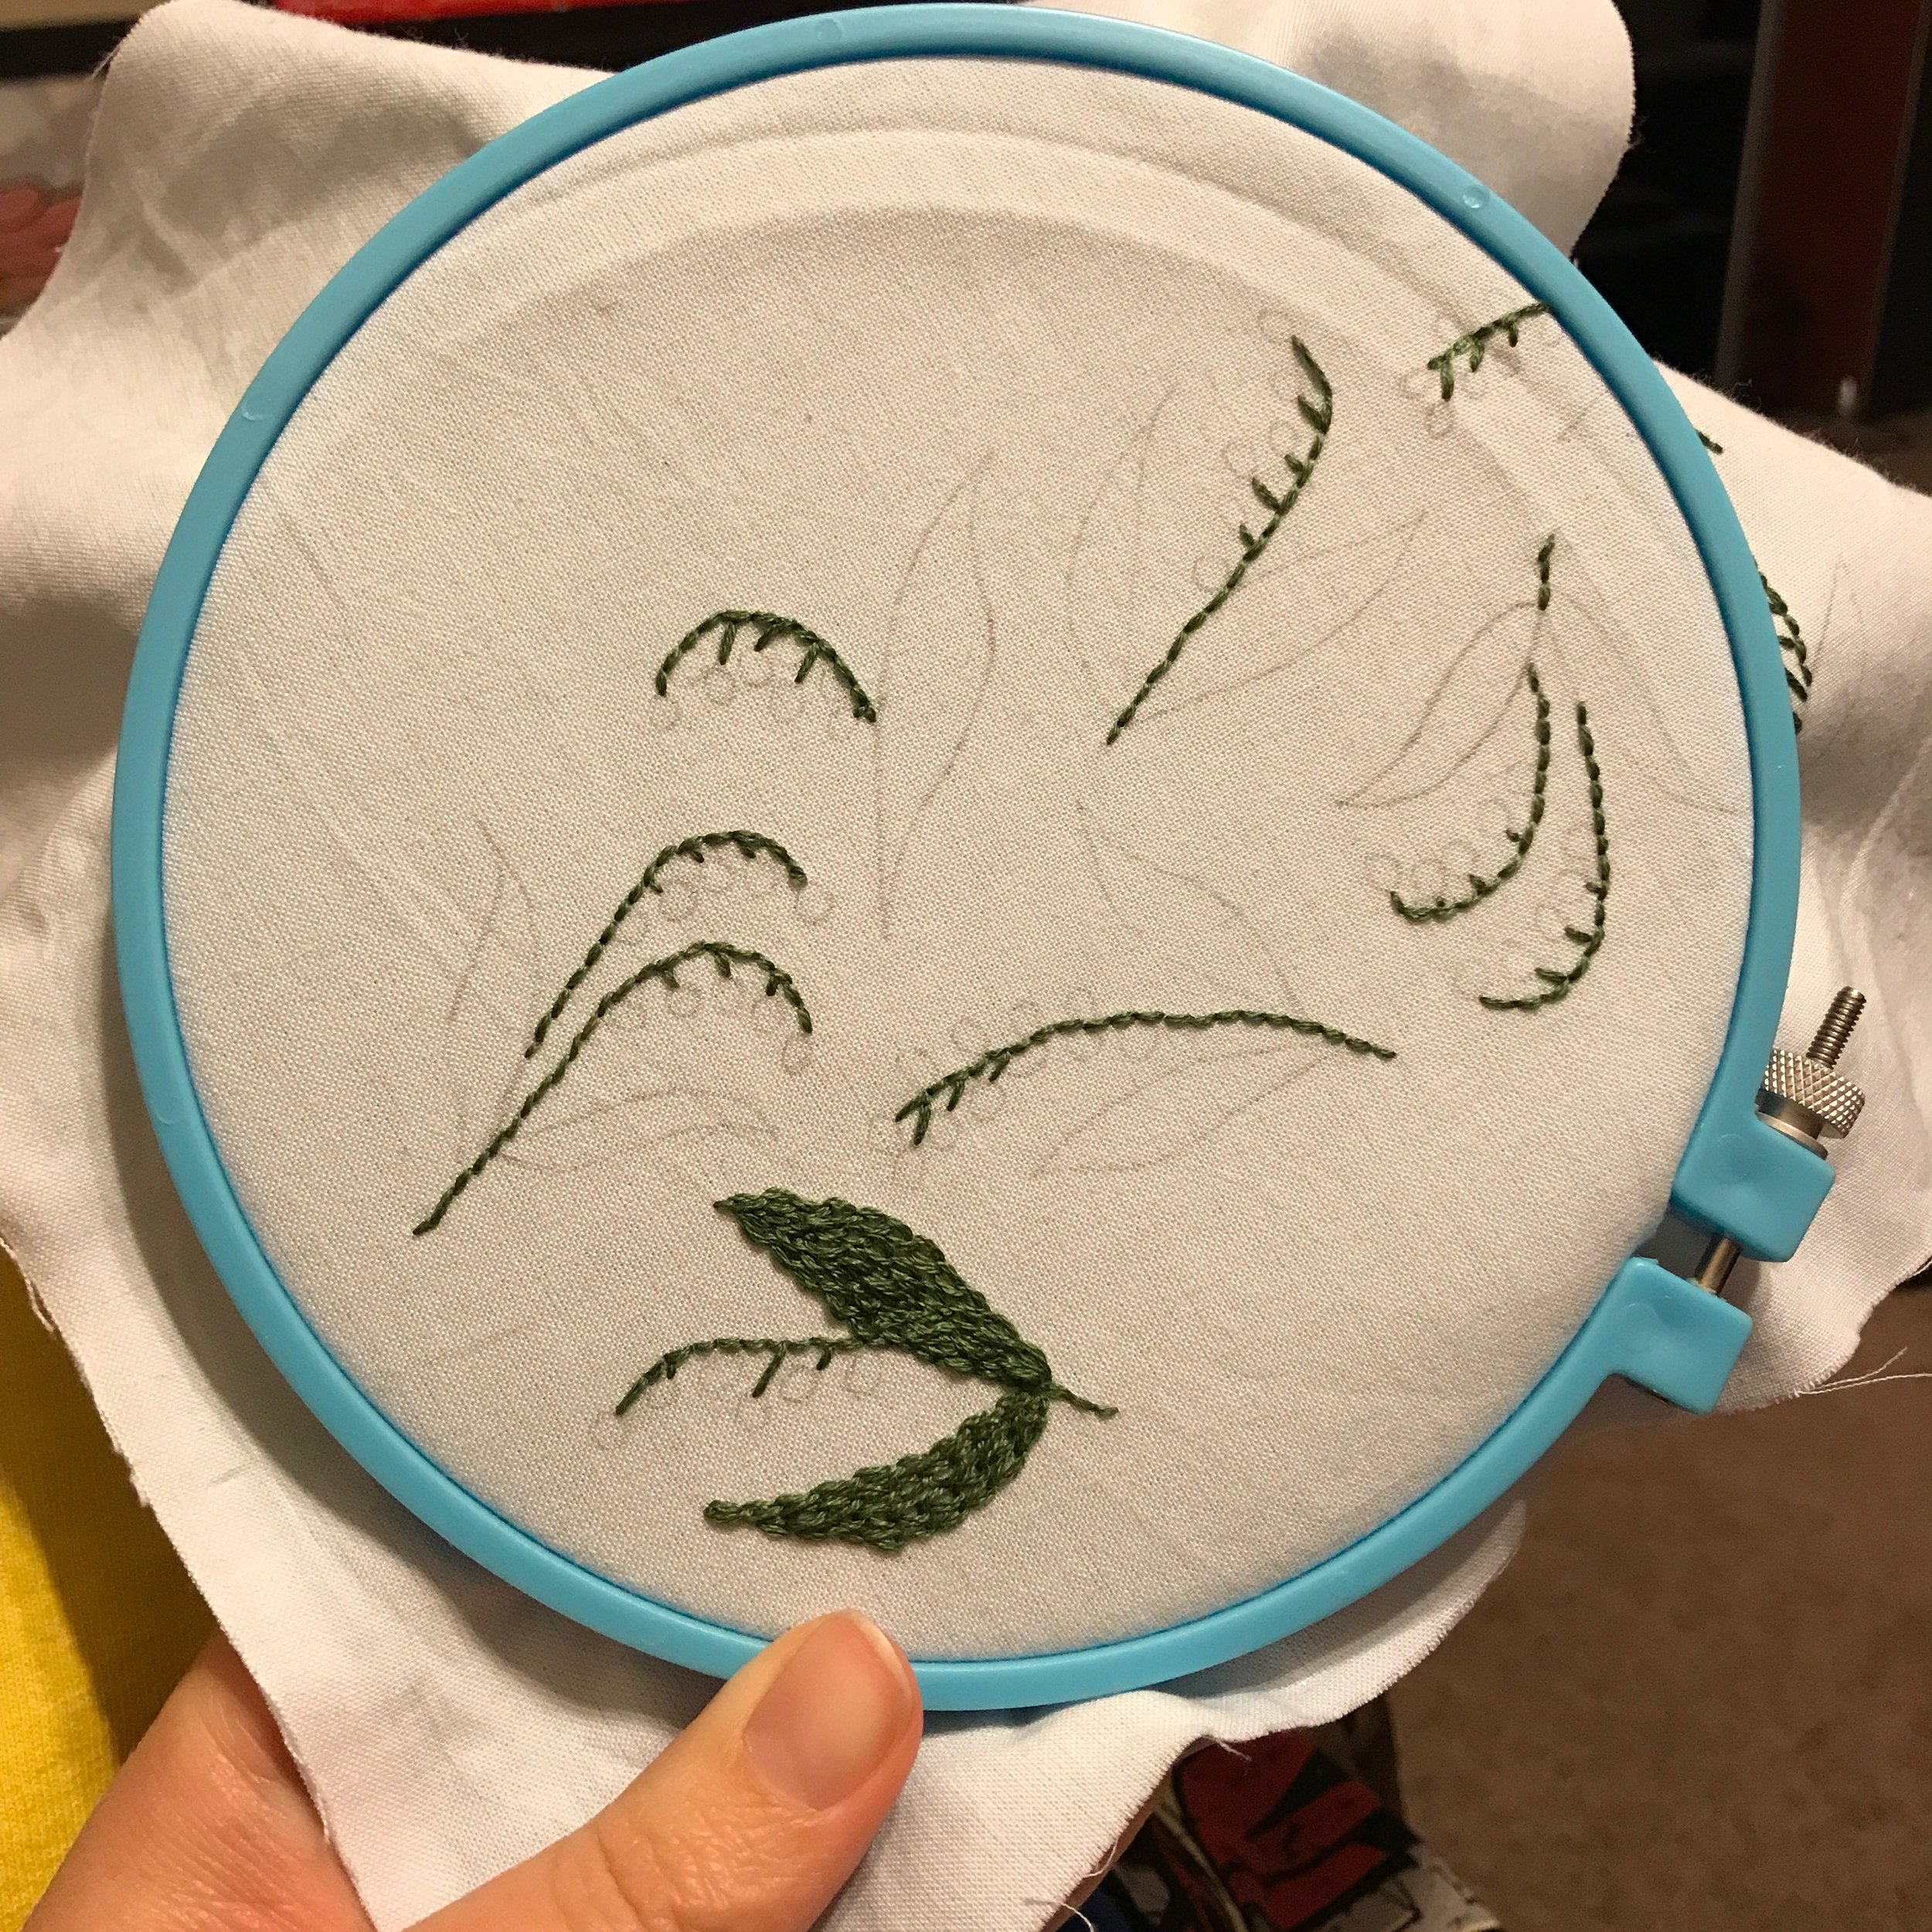 I like to break down most projects into like parts:  outline and straight stich the stems, Chain stitch the leaves, then ending with the white berries.